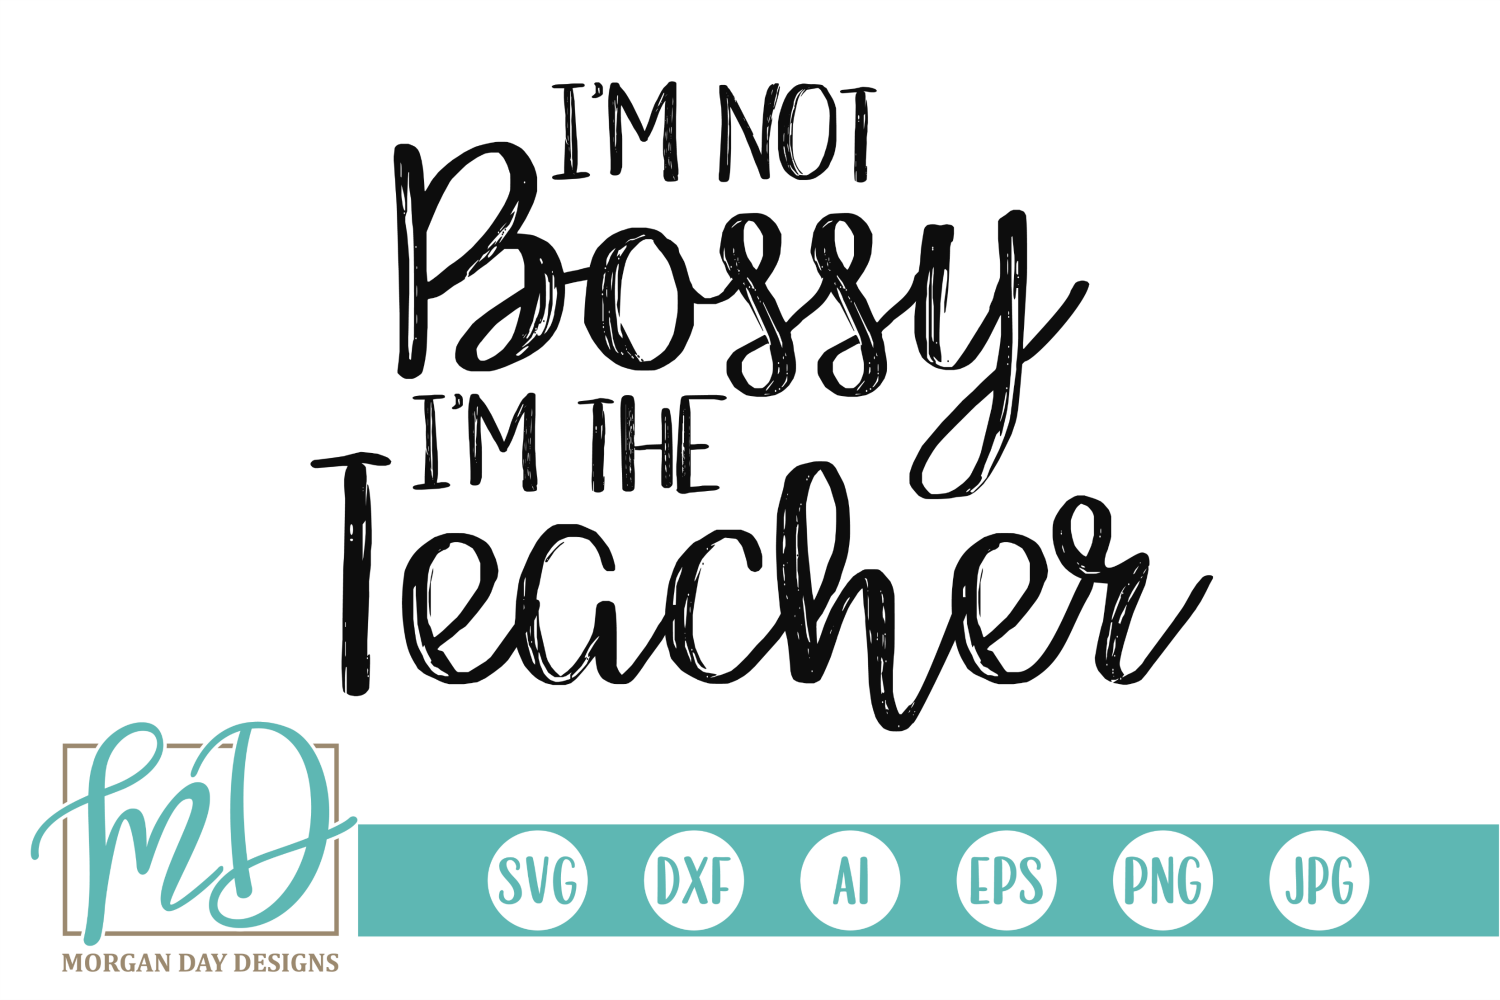 I M Not Bossy I M The Teacher Svg By Morgan Day Designs